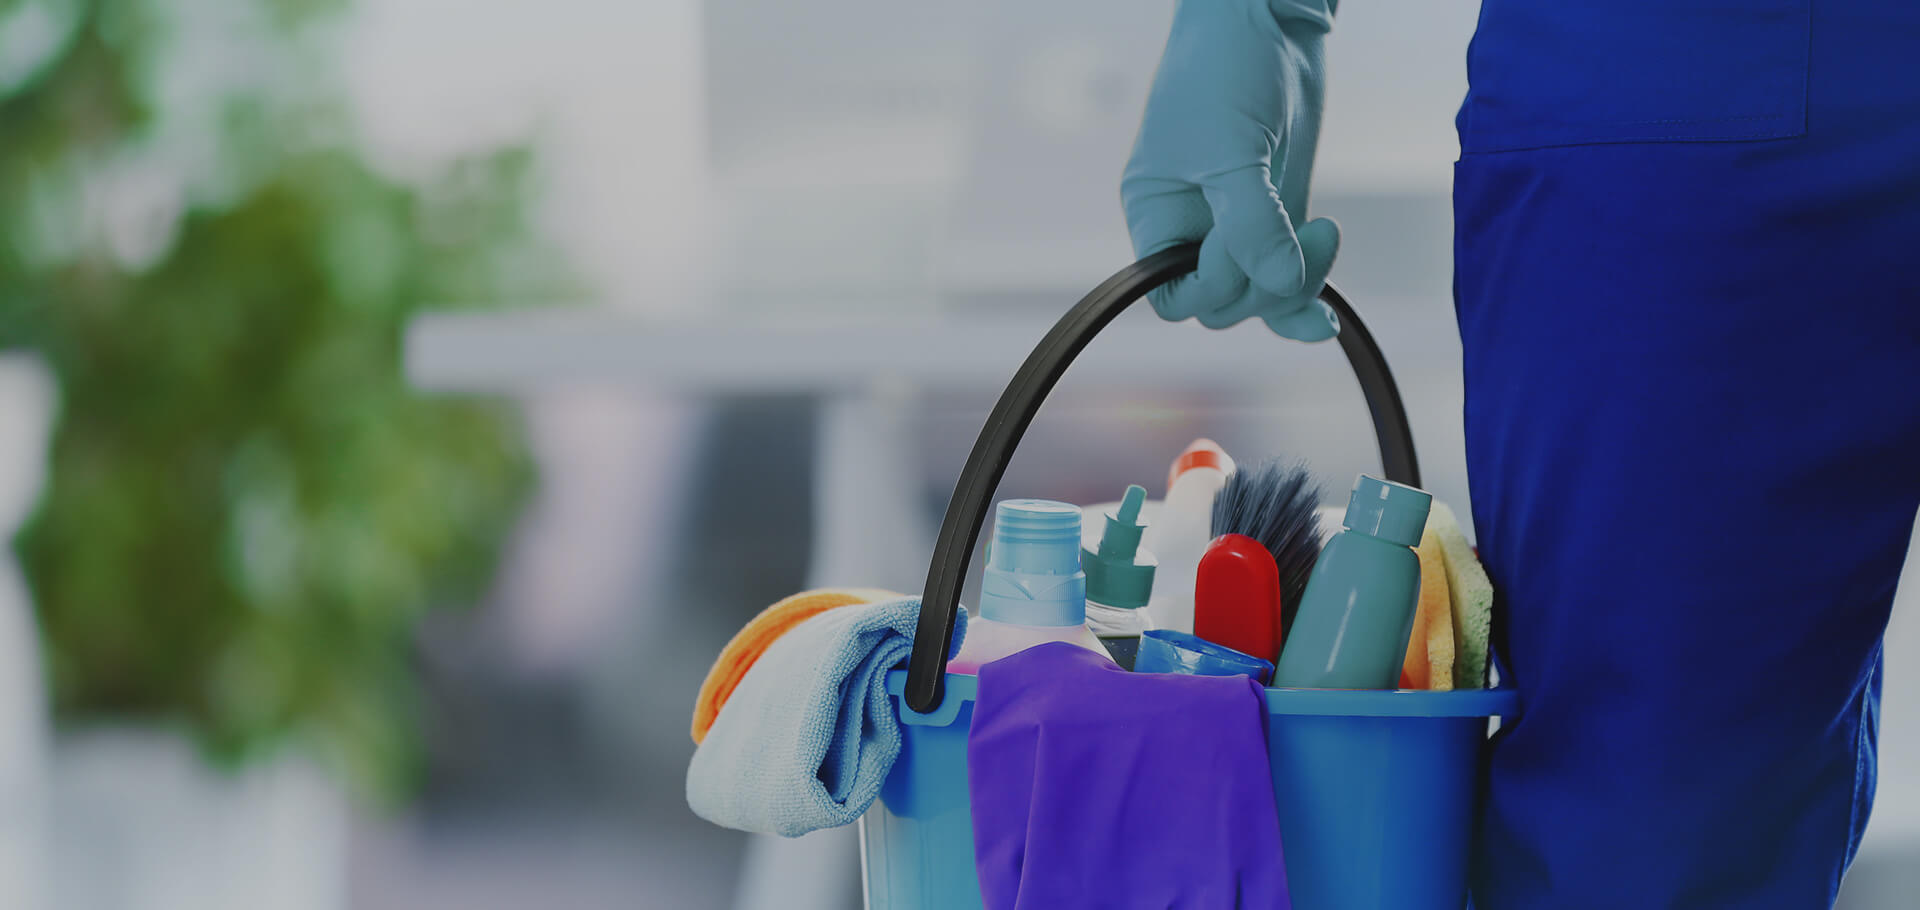 General cleaning page